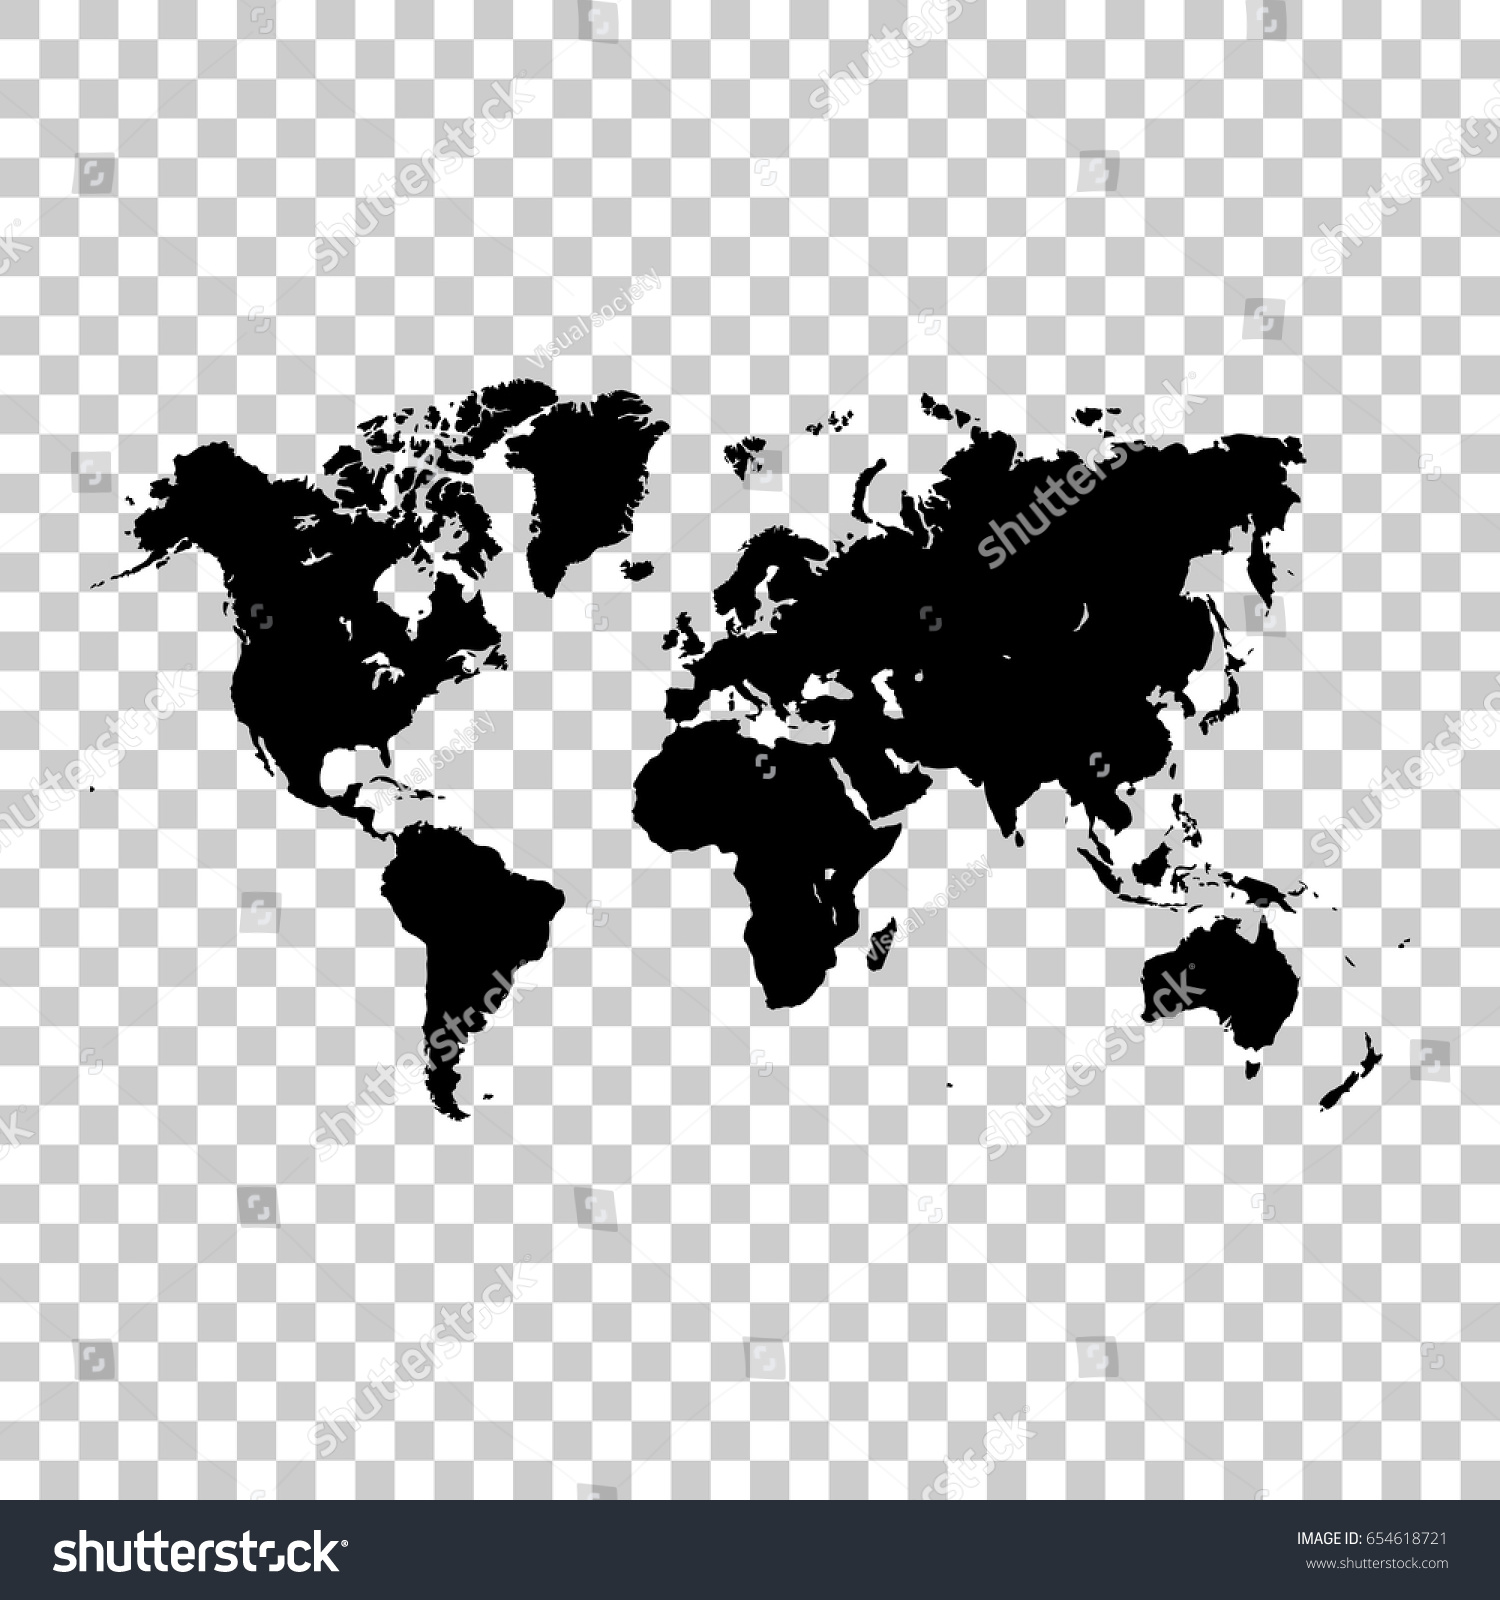 world map transparent background image collections